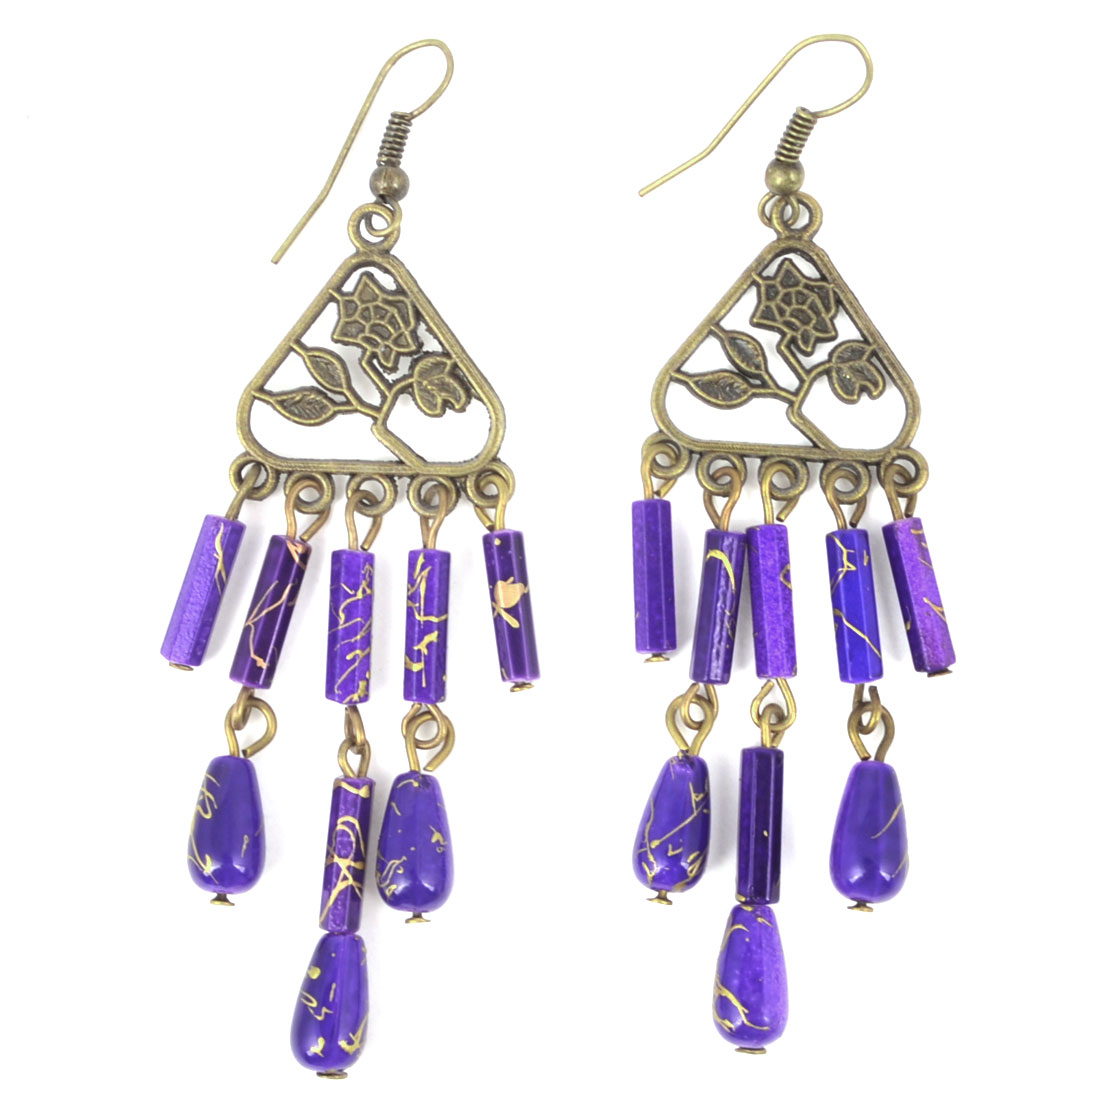 Retro Style Chandelier Ornament Fish Hook Earrings Purple Bronze Tone for Lady